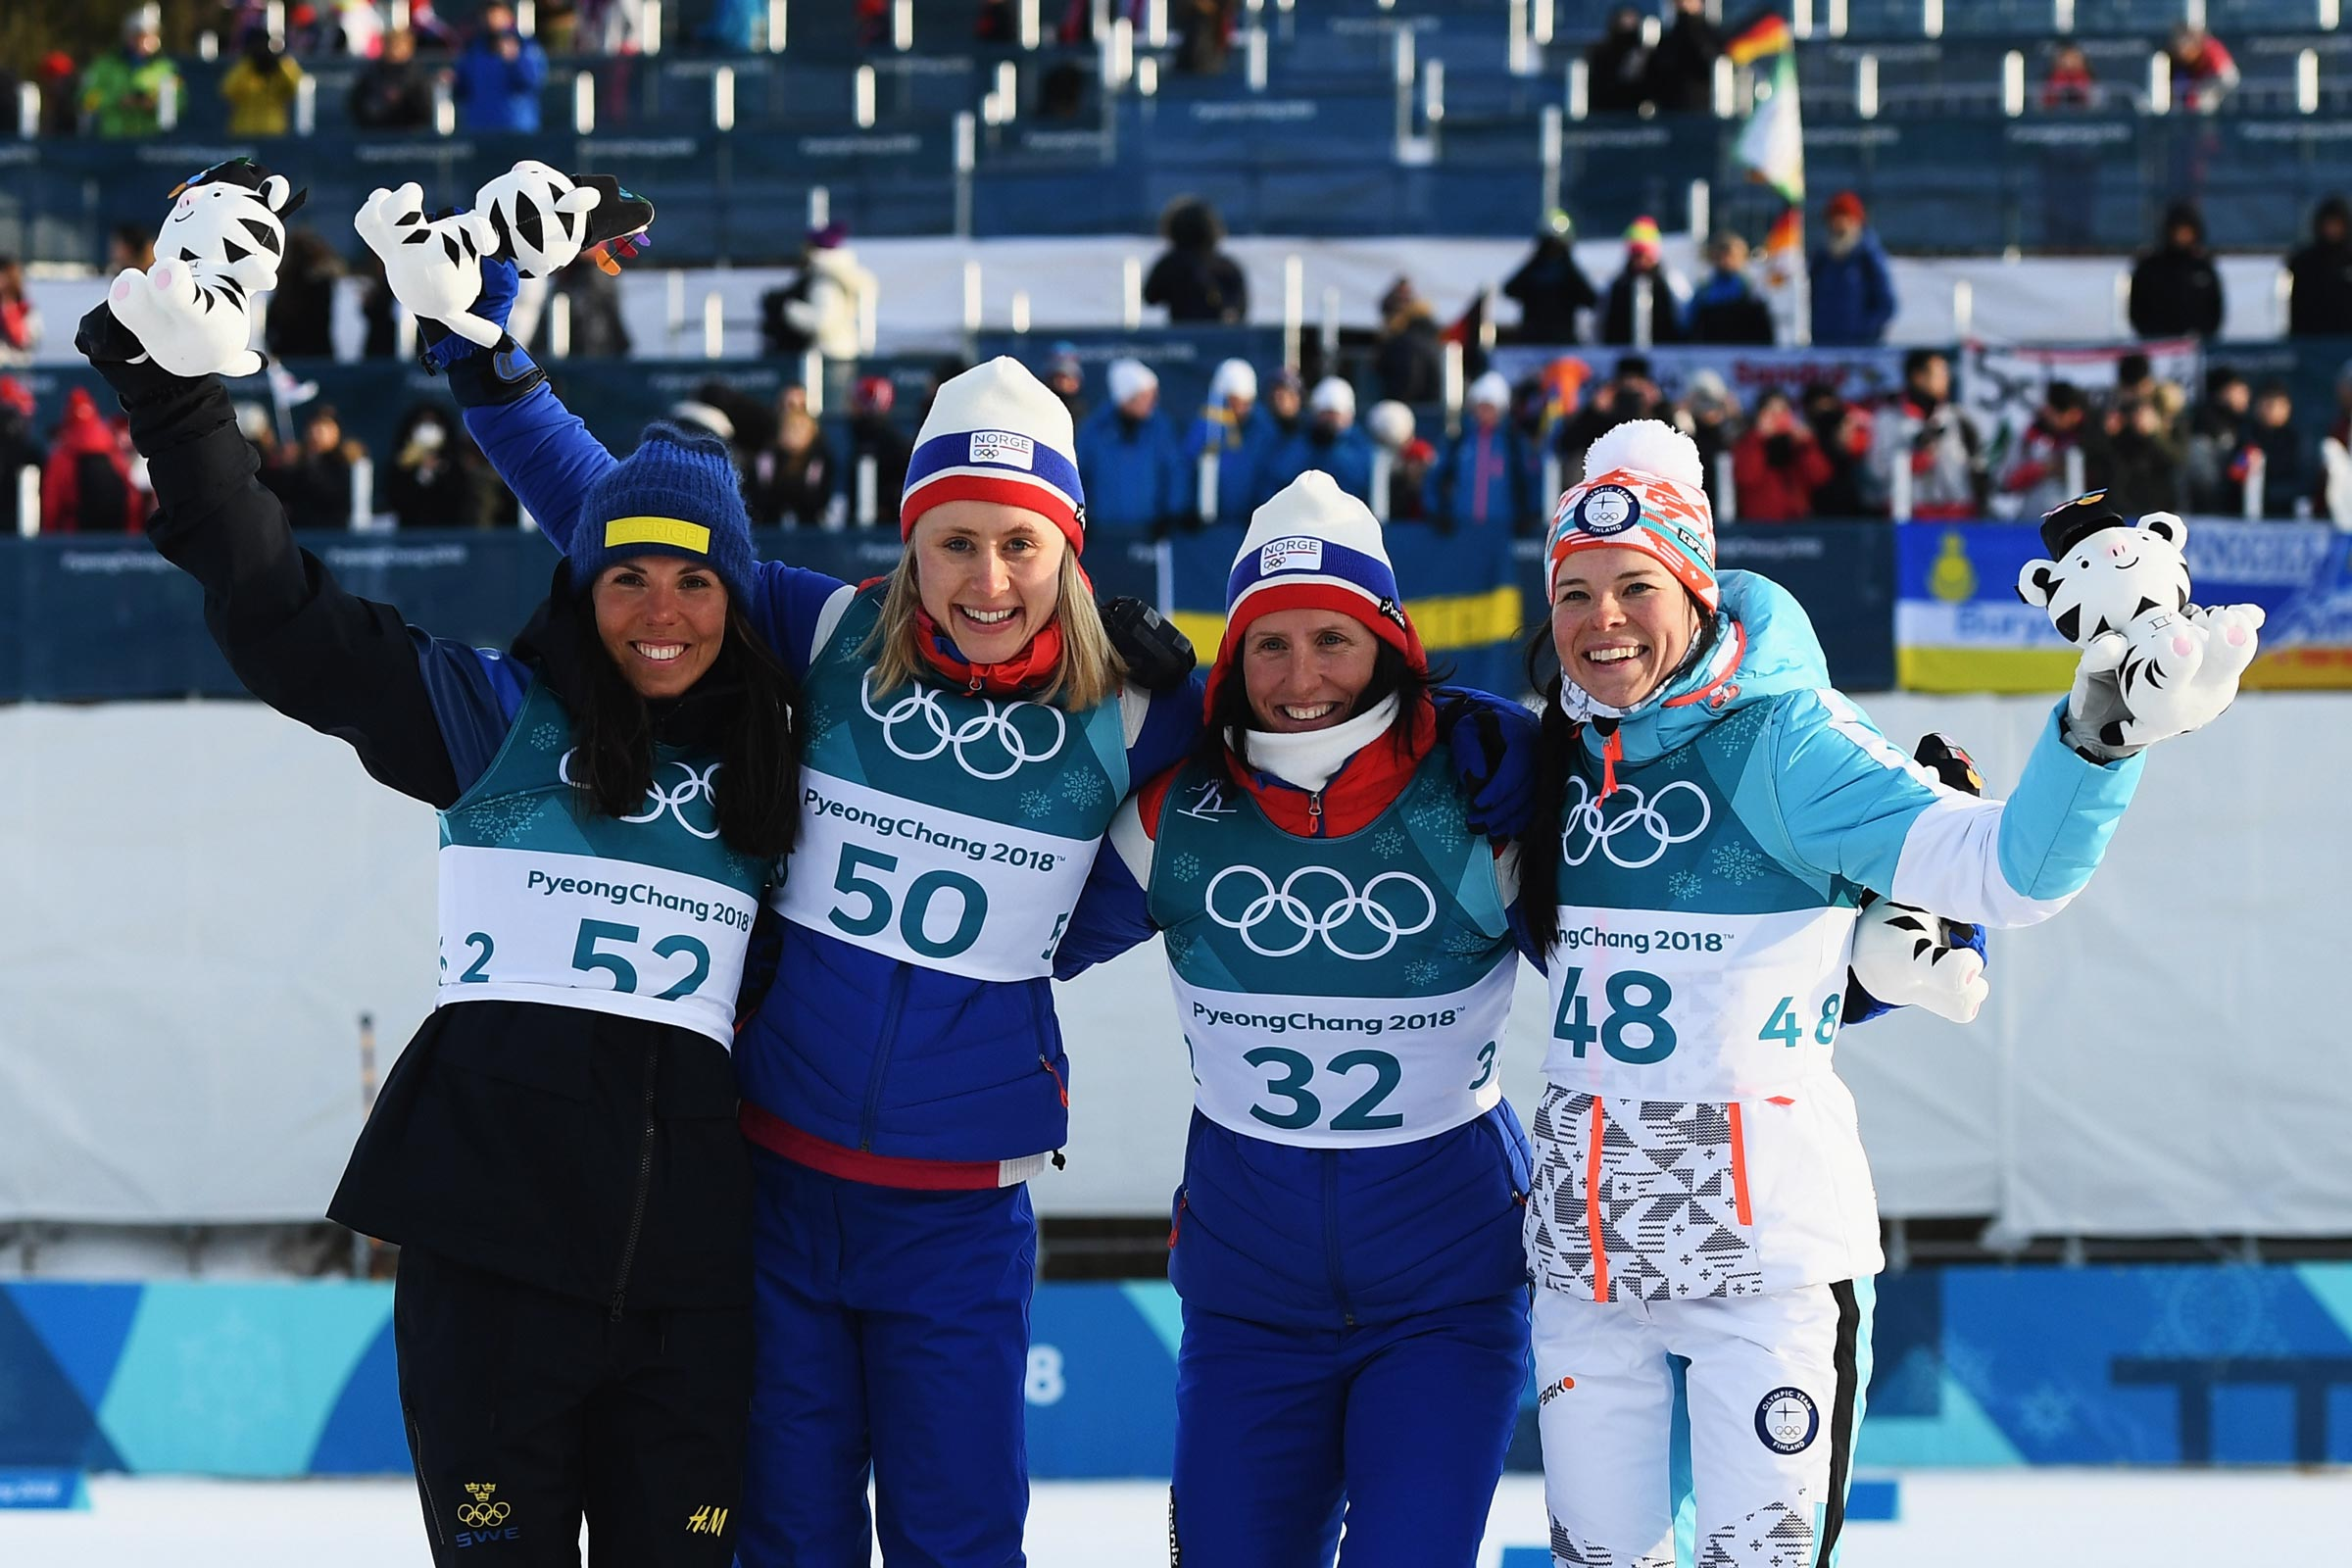 Cross-Country Skiing - Ladies' 10km Free